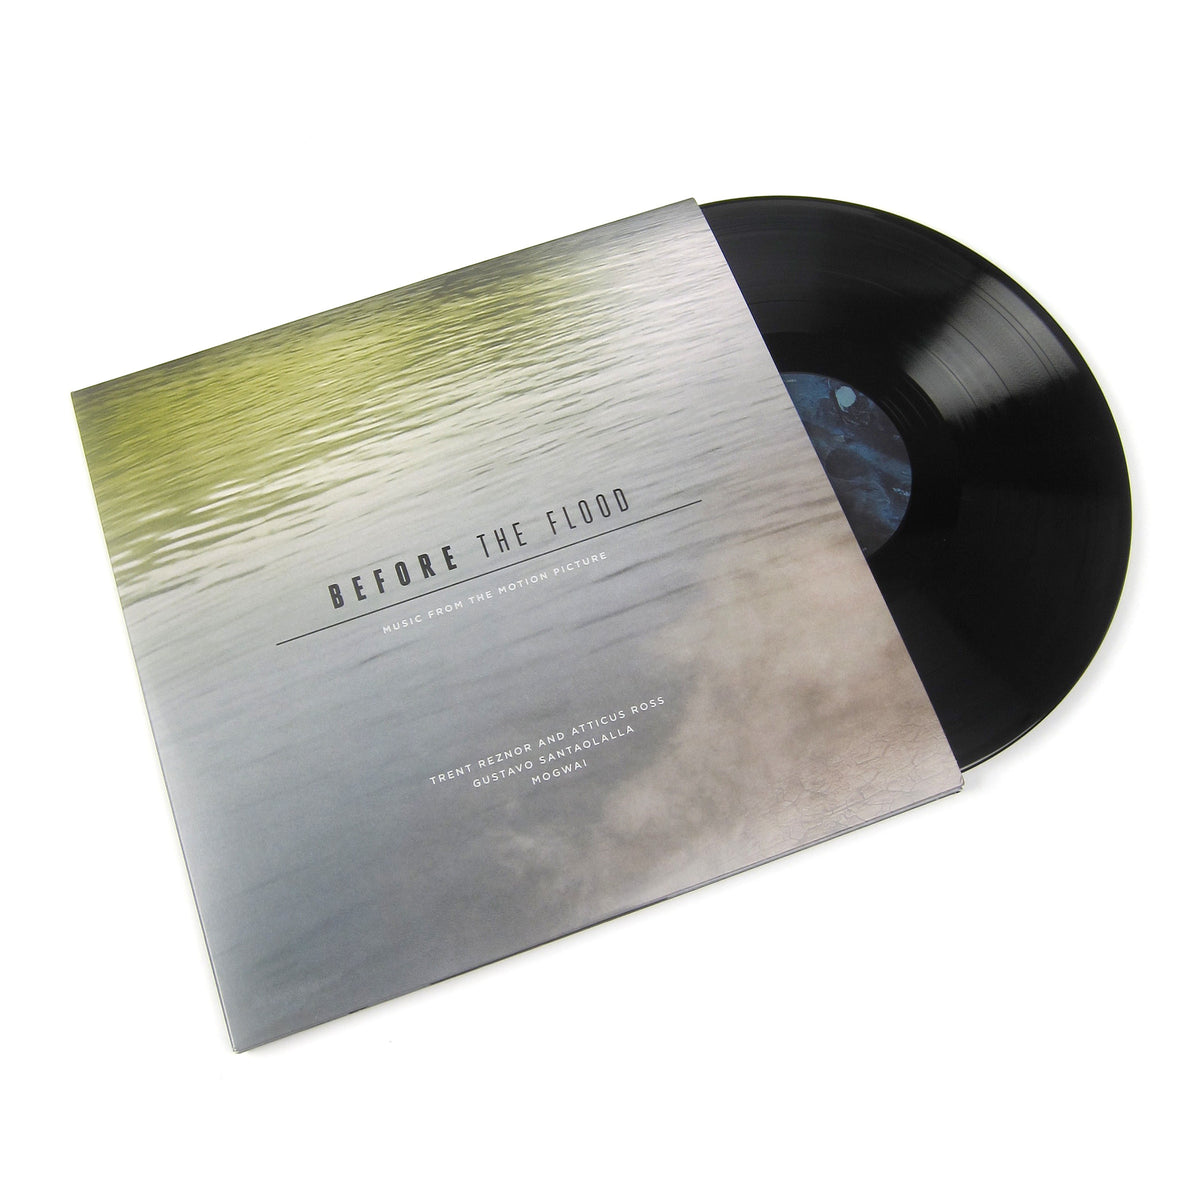 Trent Reznor & Atticus Ross / Gustavo Santaolalla / Mogwai: Before The Flood (180g) Vinyl 3LP